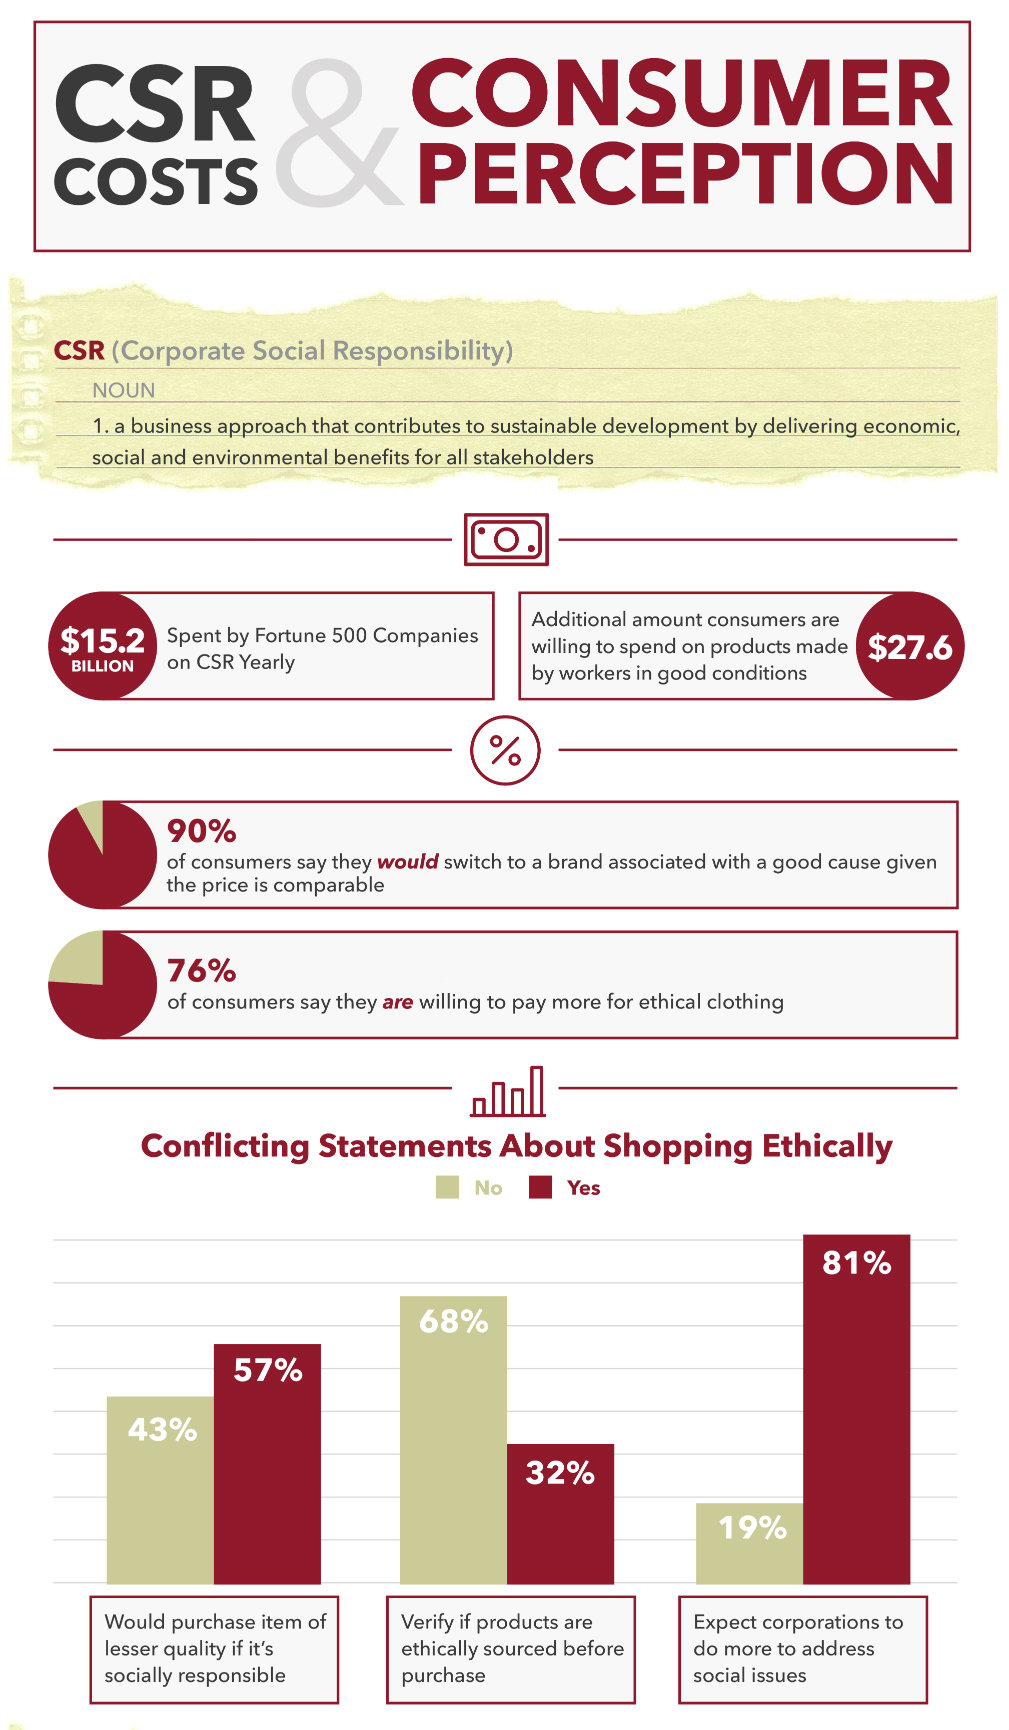 Corporate Social Responsibility and Consumer Perception